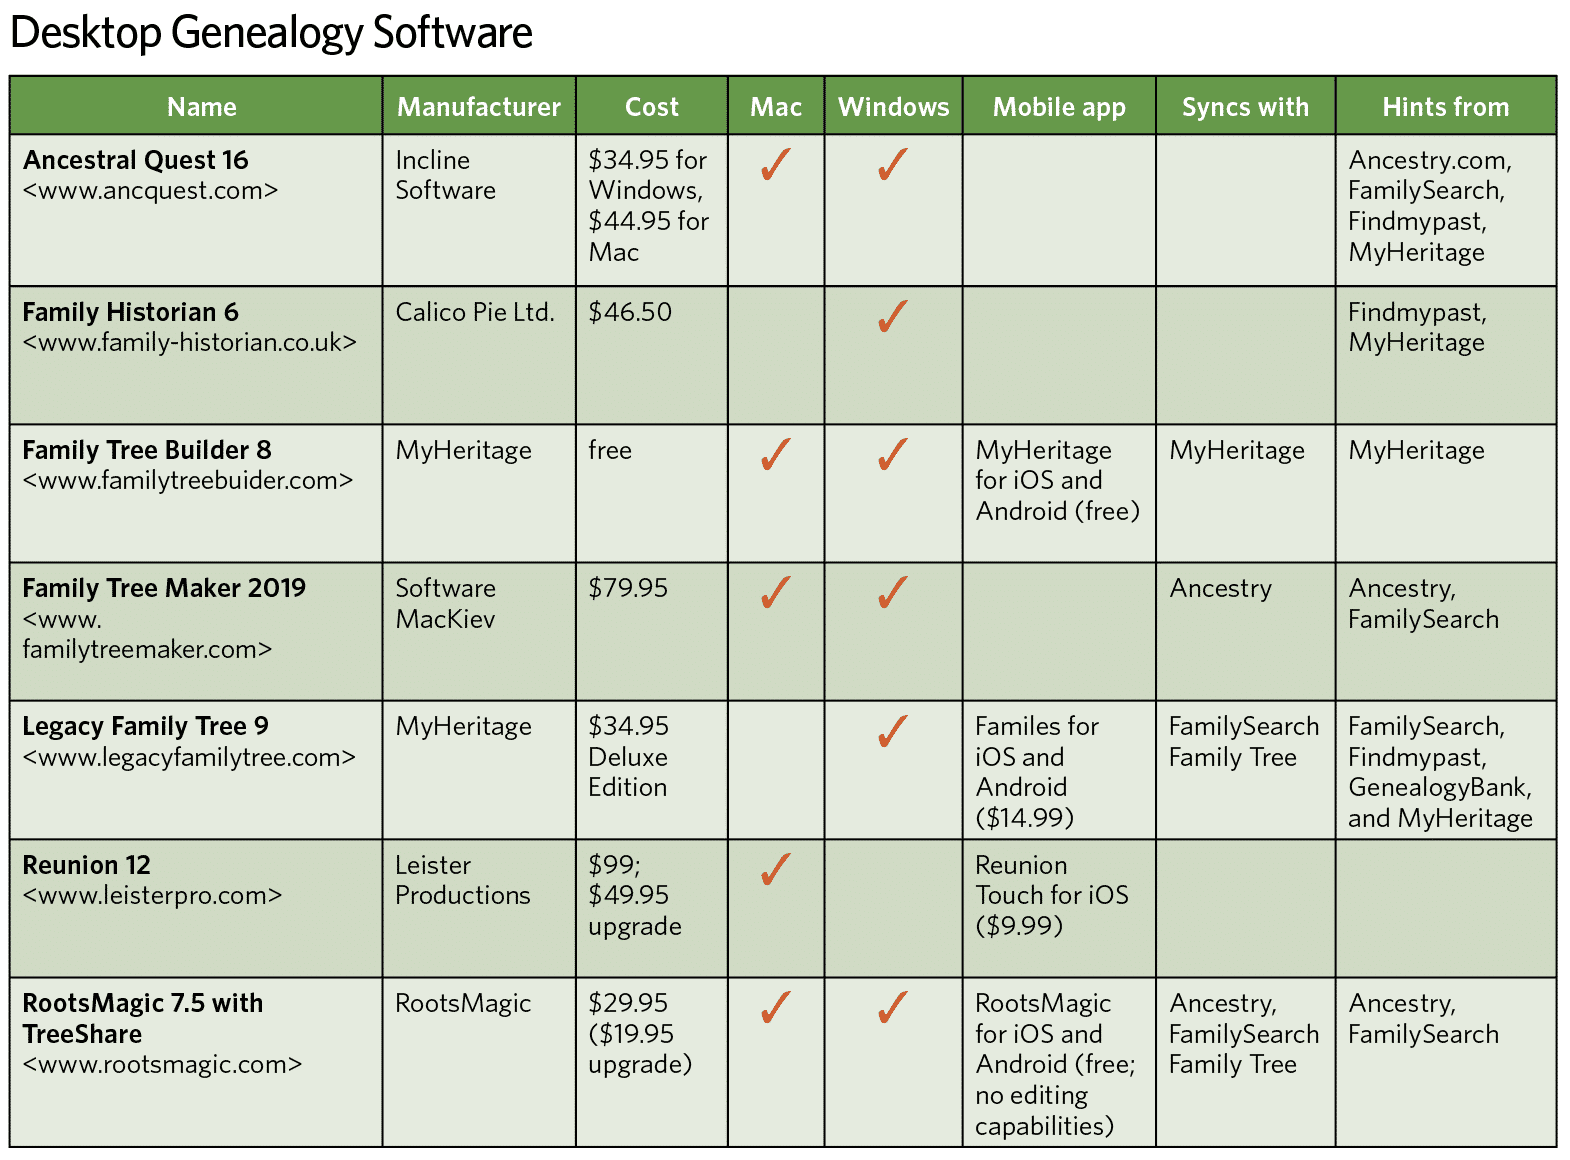 Desktop genealogy software comparison.